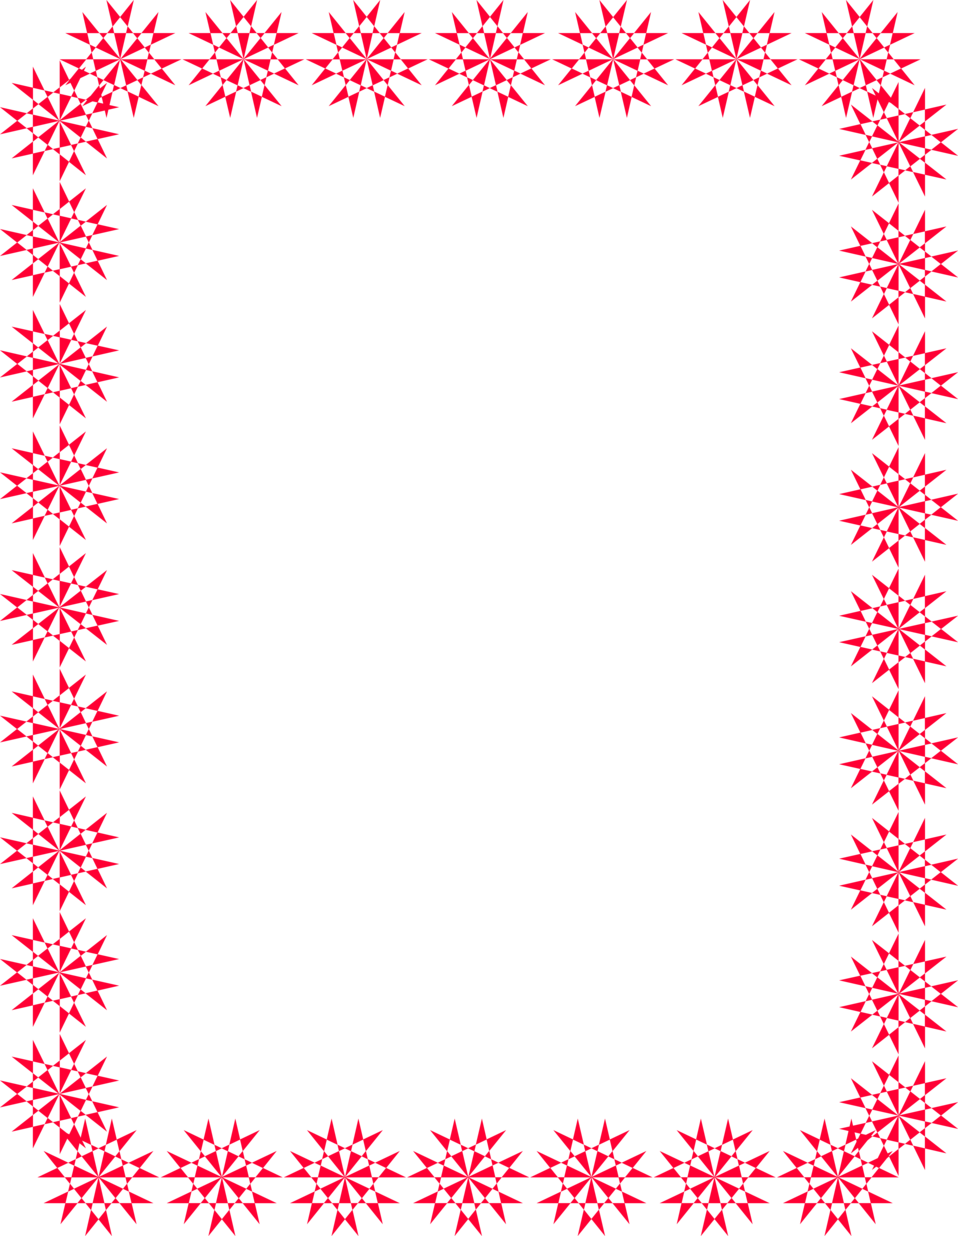 Red Christmas Border Clipart - Clipart Suggest